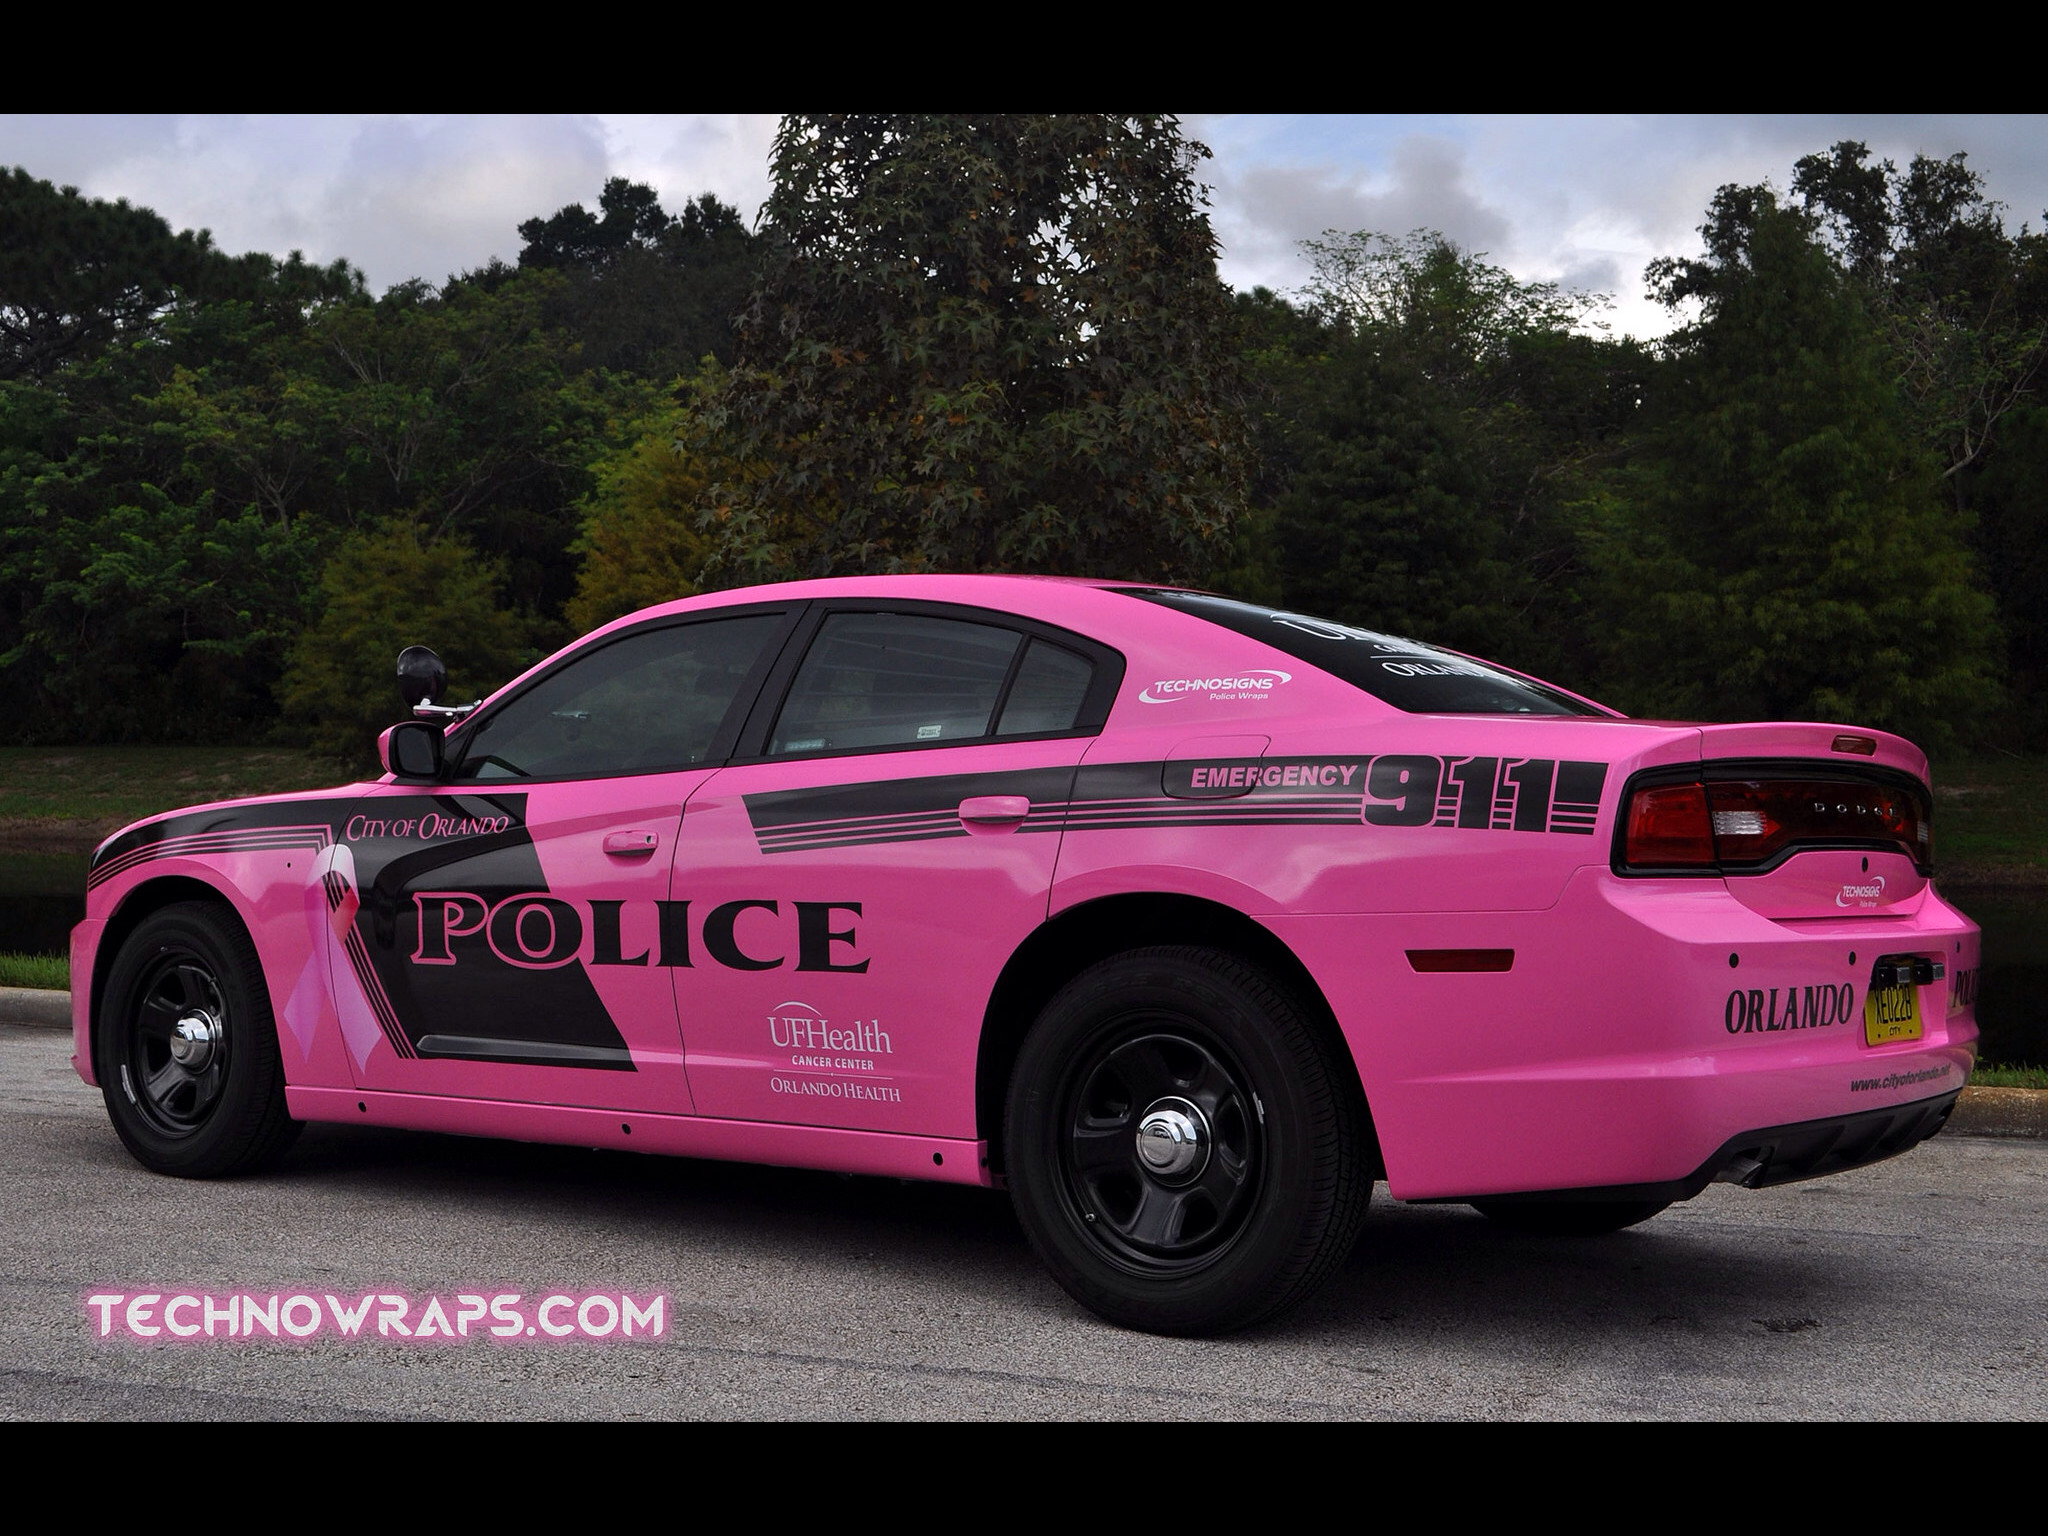 Law enforcement vehicle wrap designed by TechnoSigns in Orlando, Florida  for breast cancer awareness month